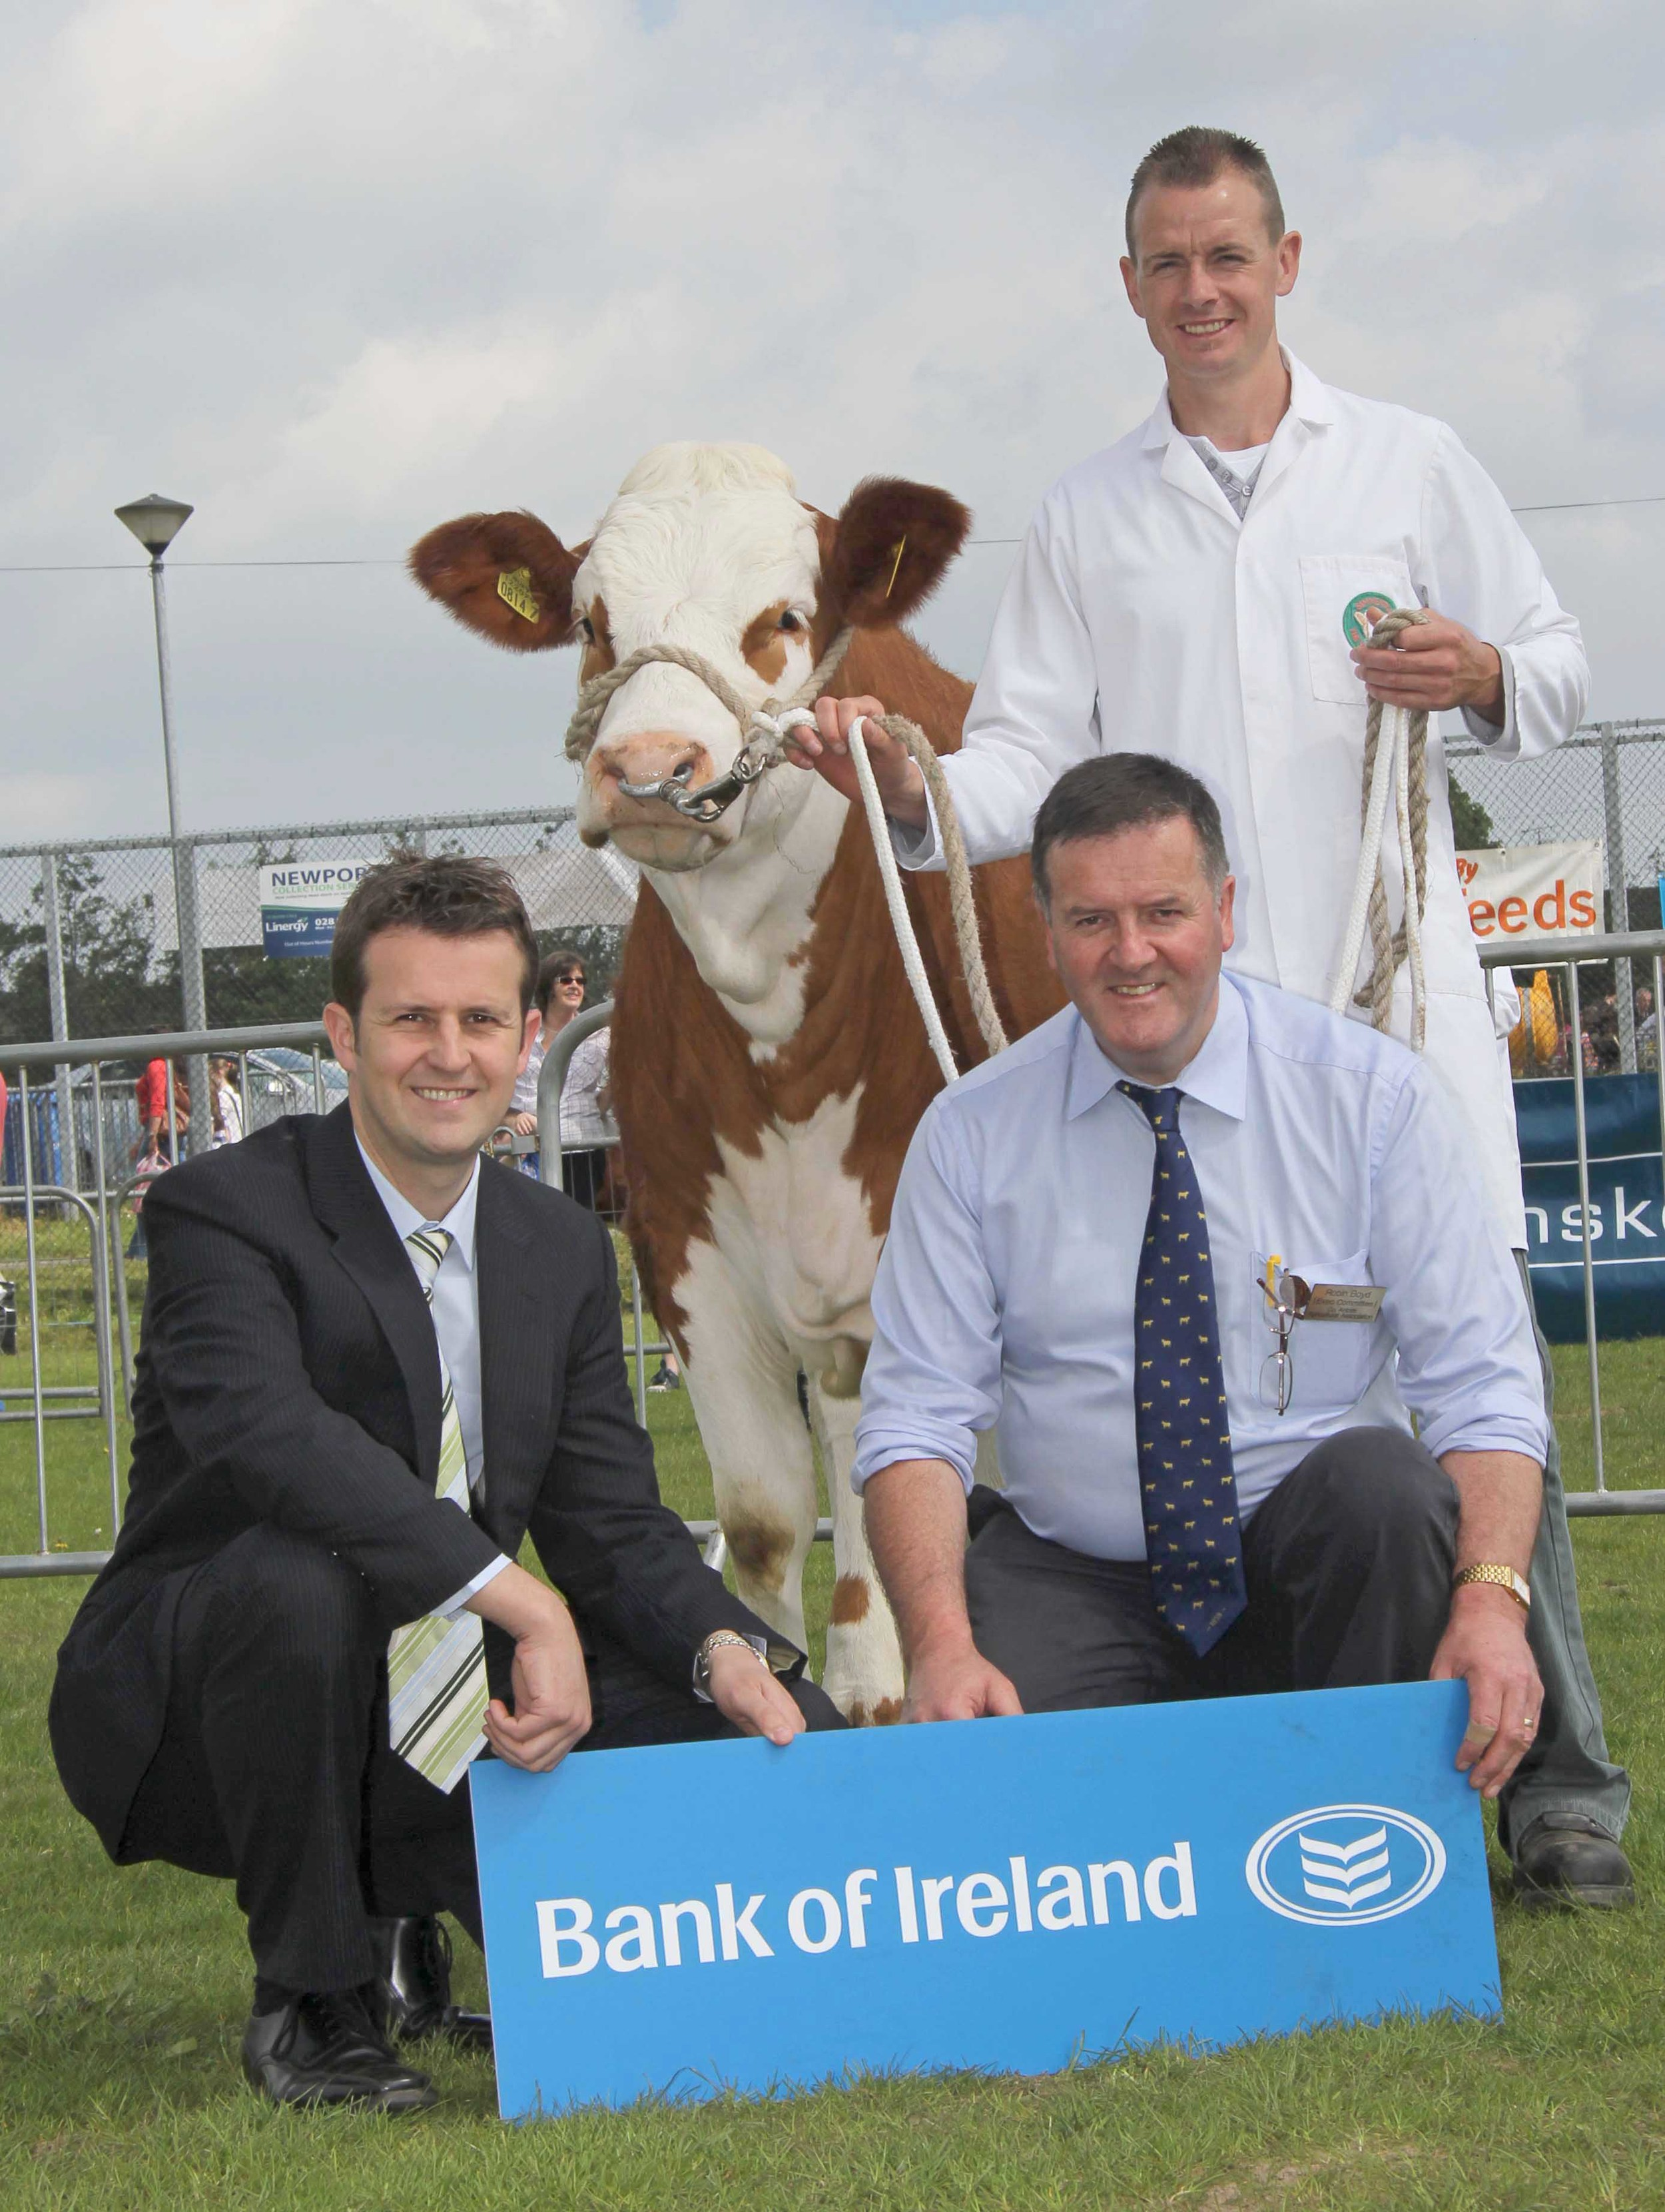 Bank of Ireland is continuing its sponsorship of the Simmental Young Members' Association. Looking forward to the stockjudging event on Tuesday evening June 17, are William Thompson, Bank of Ireland; club secretary Robin Boyd; and chairman Richard Rodgers who is hosting the event at his Portglenone-based Hiltonstown Herd.